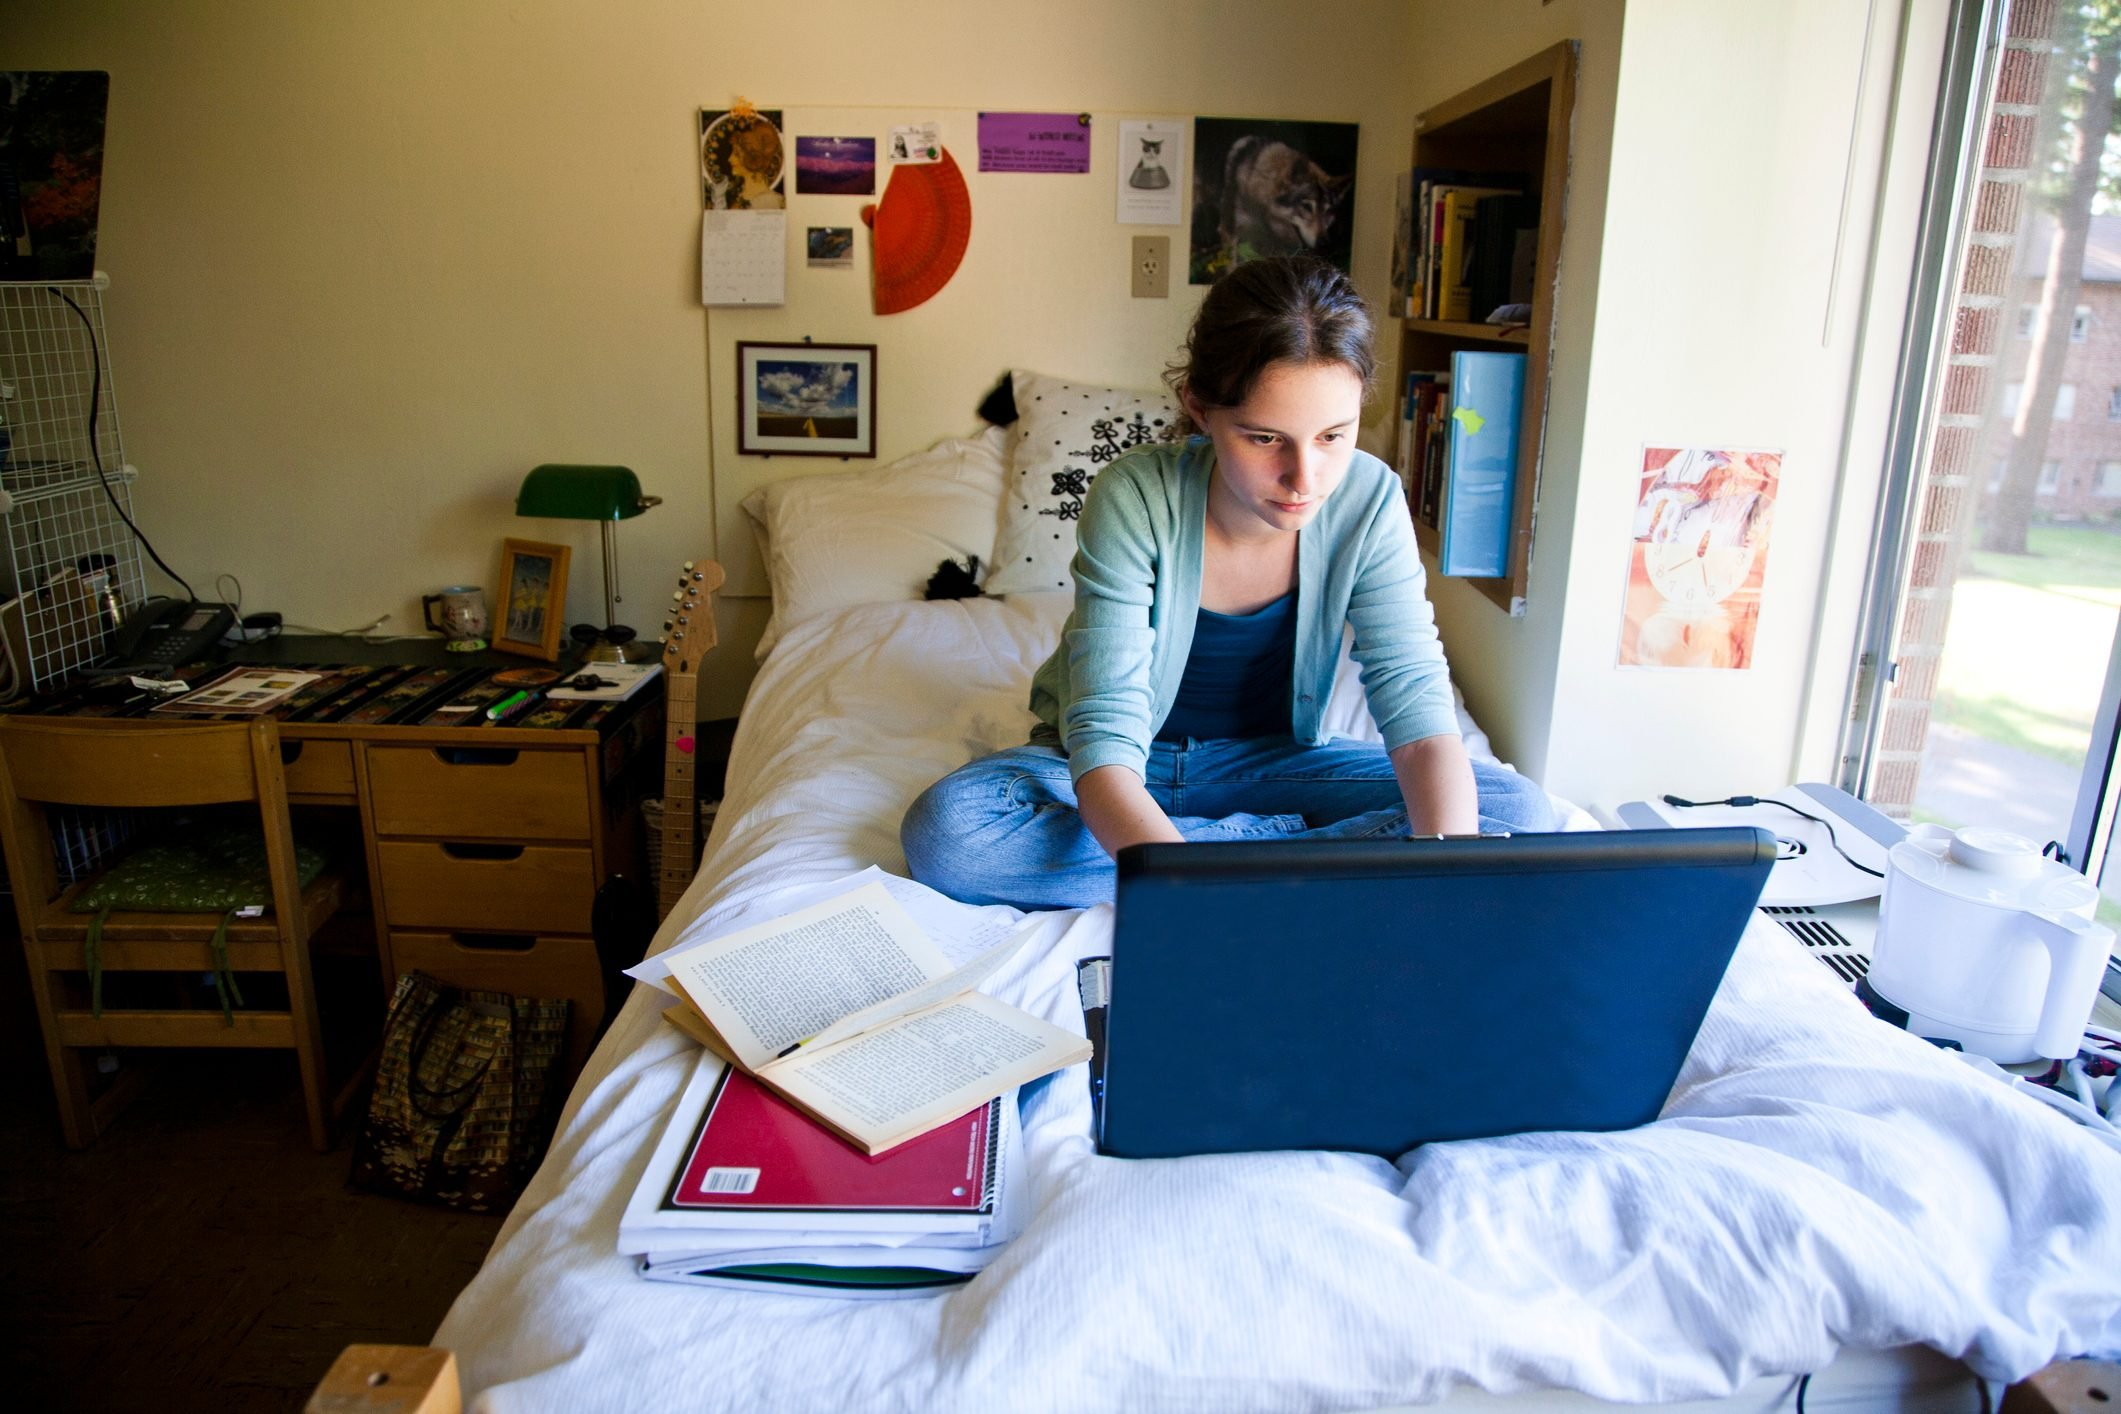 Female college student in her dorm room working on computer